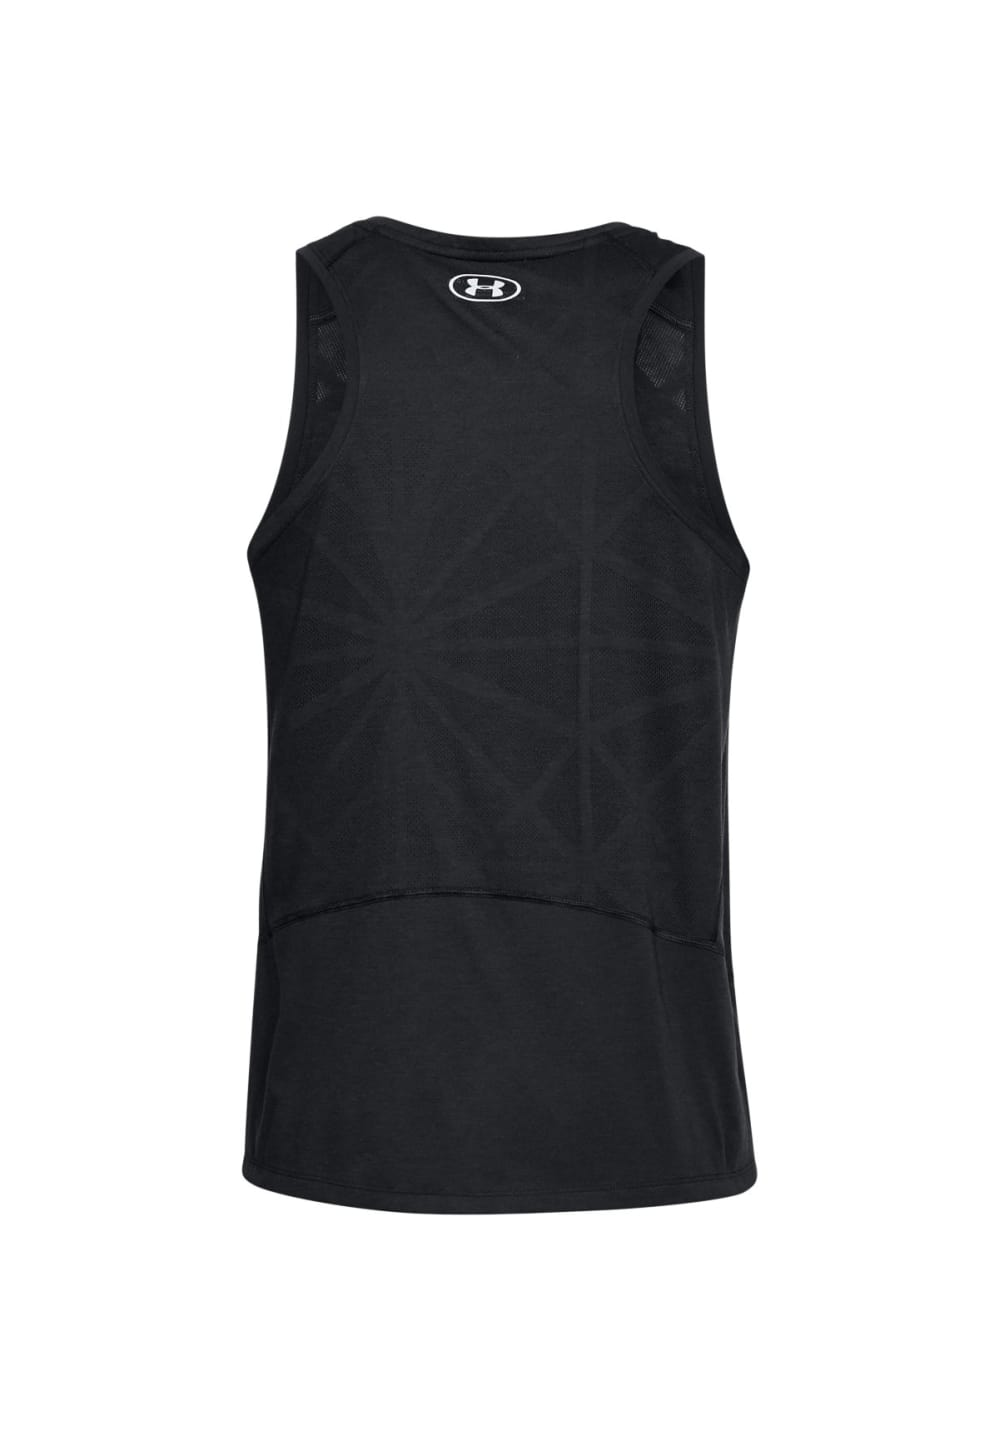 7cd463a72d21f Next. -50%. This product is currently out of stock. Under Armour. Threadborne  Swyft Singlet - Running tops for Men